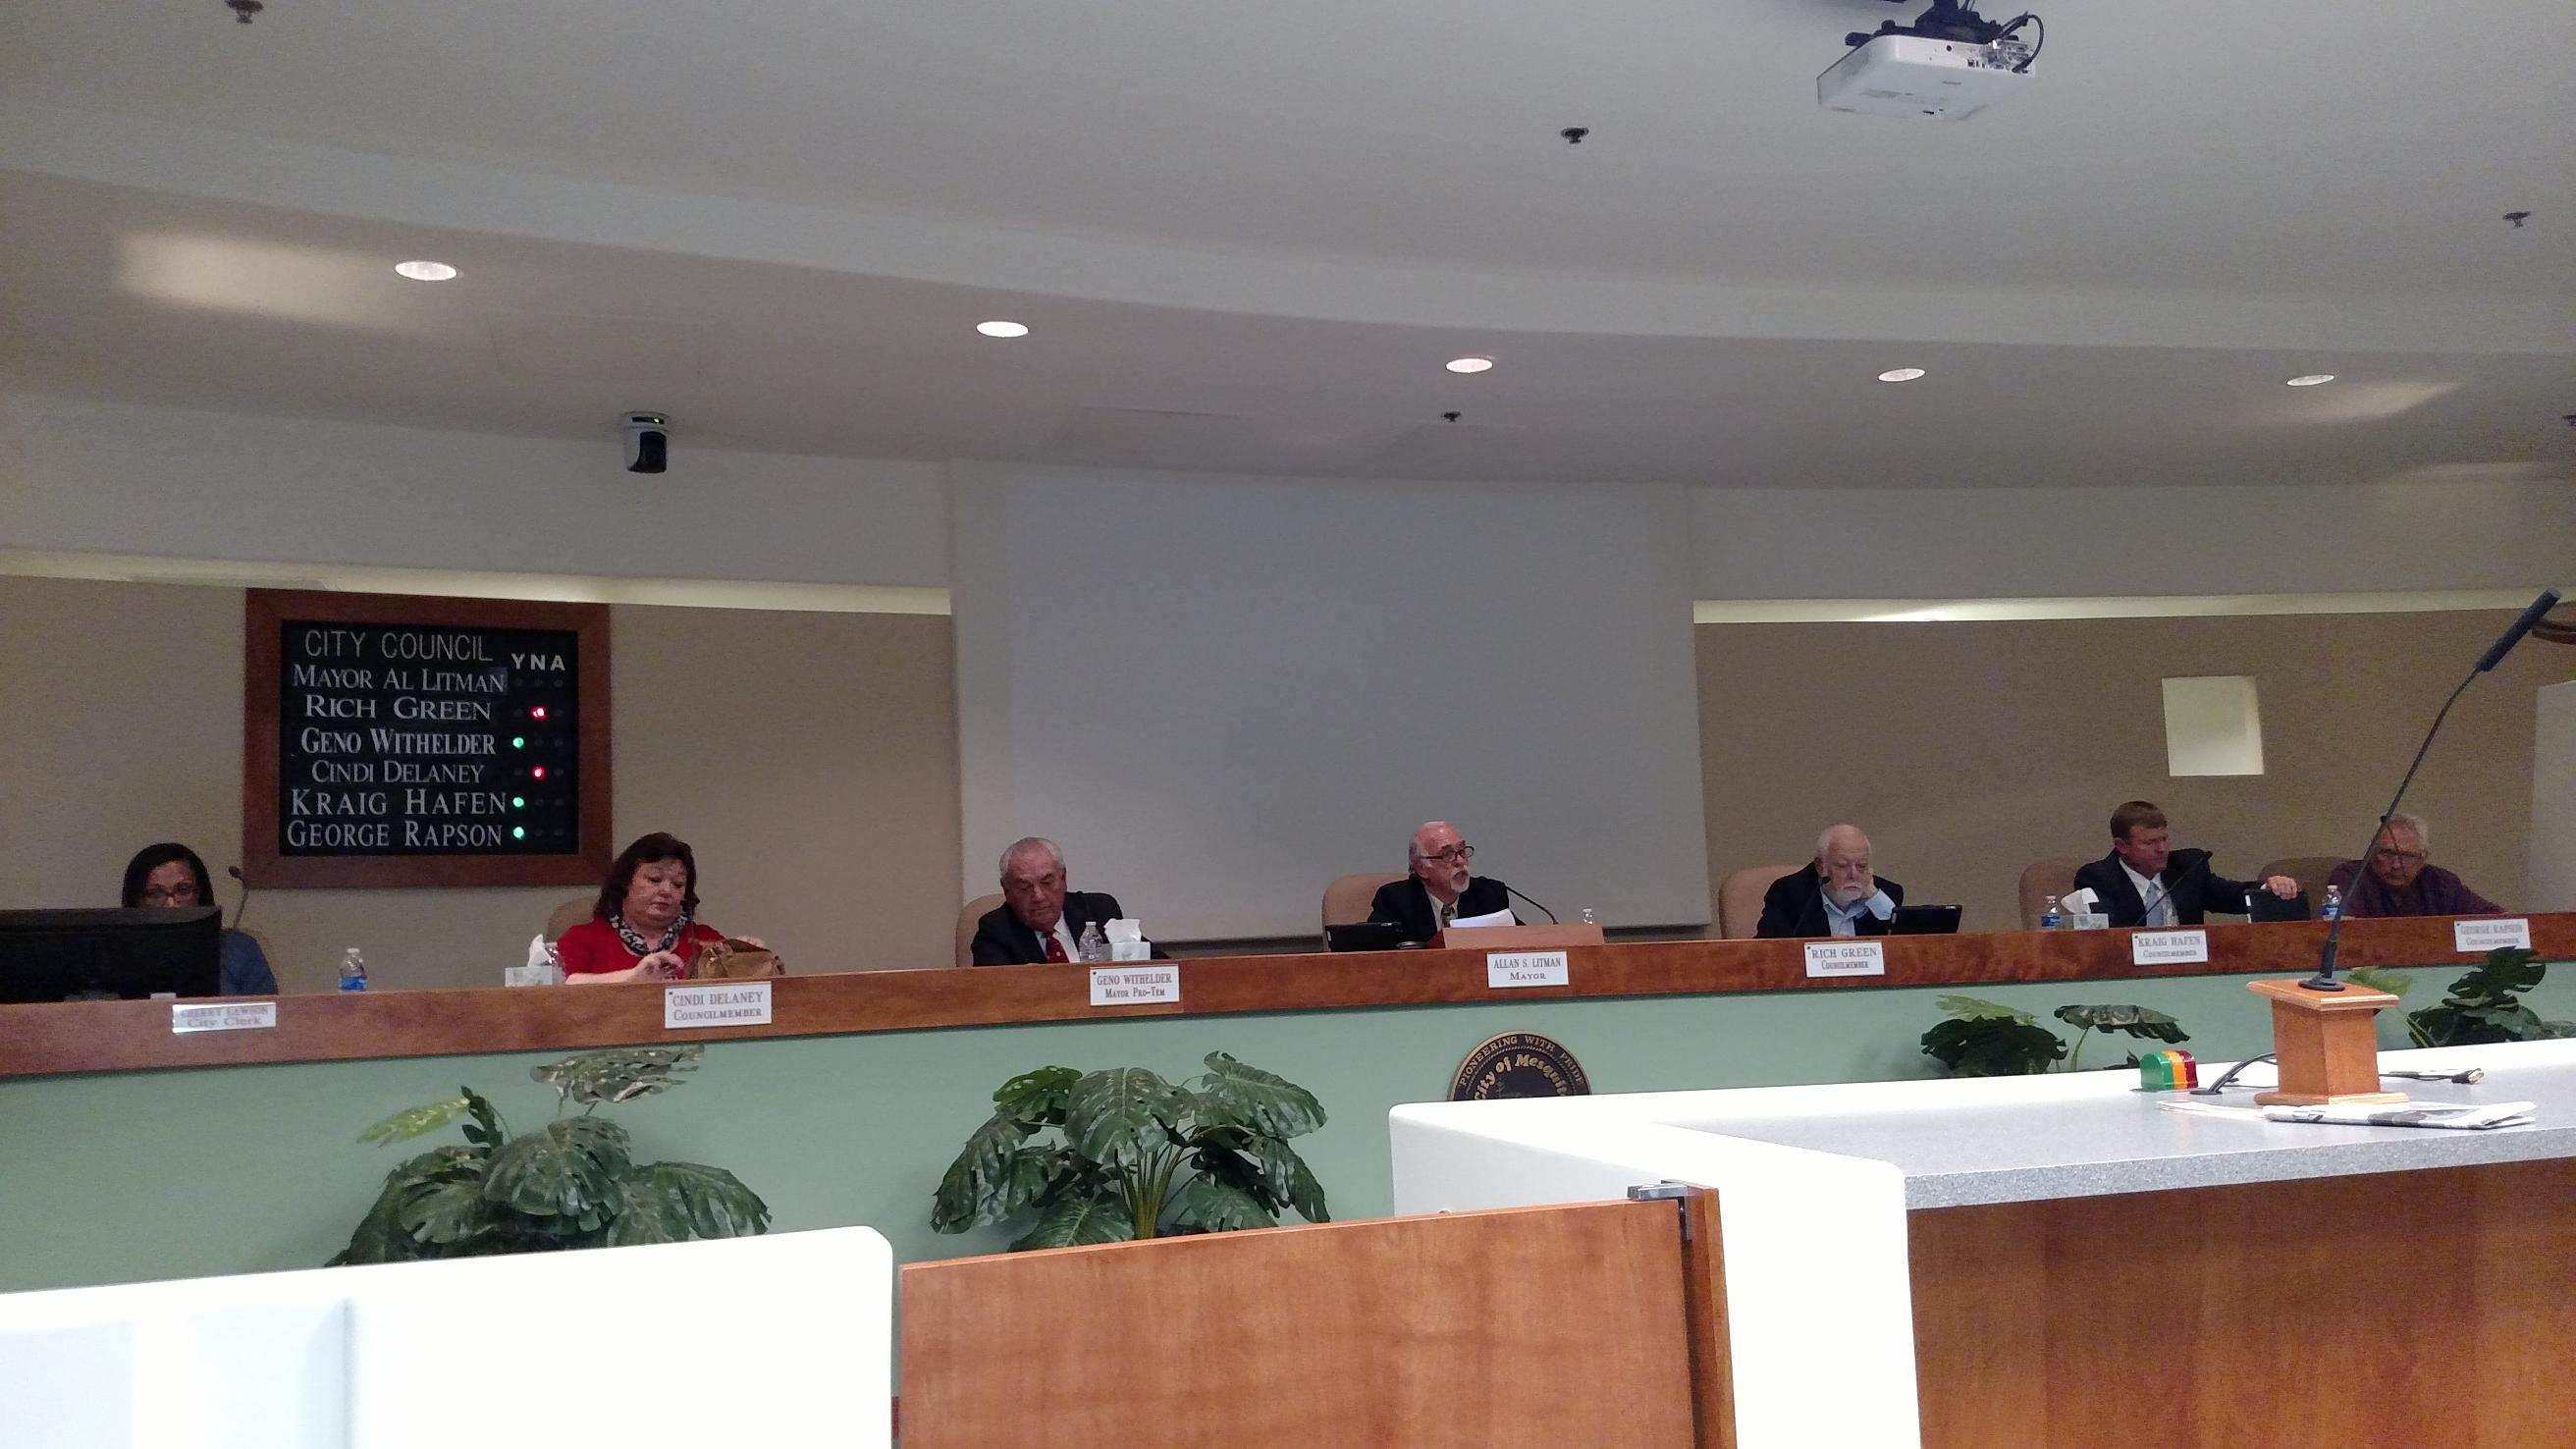 Council Approves Agreement with Union, other items